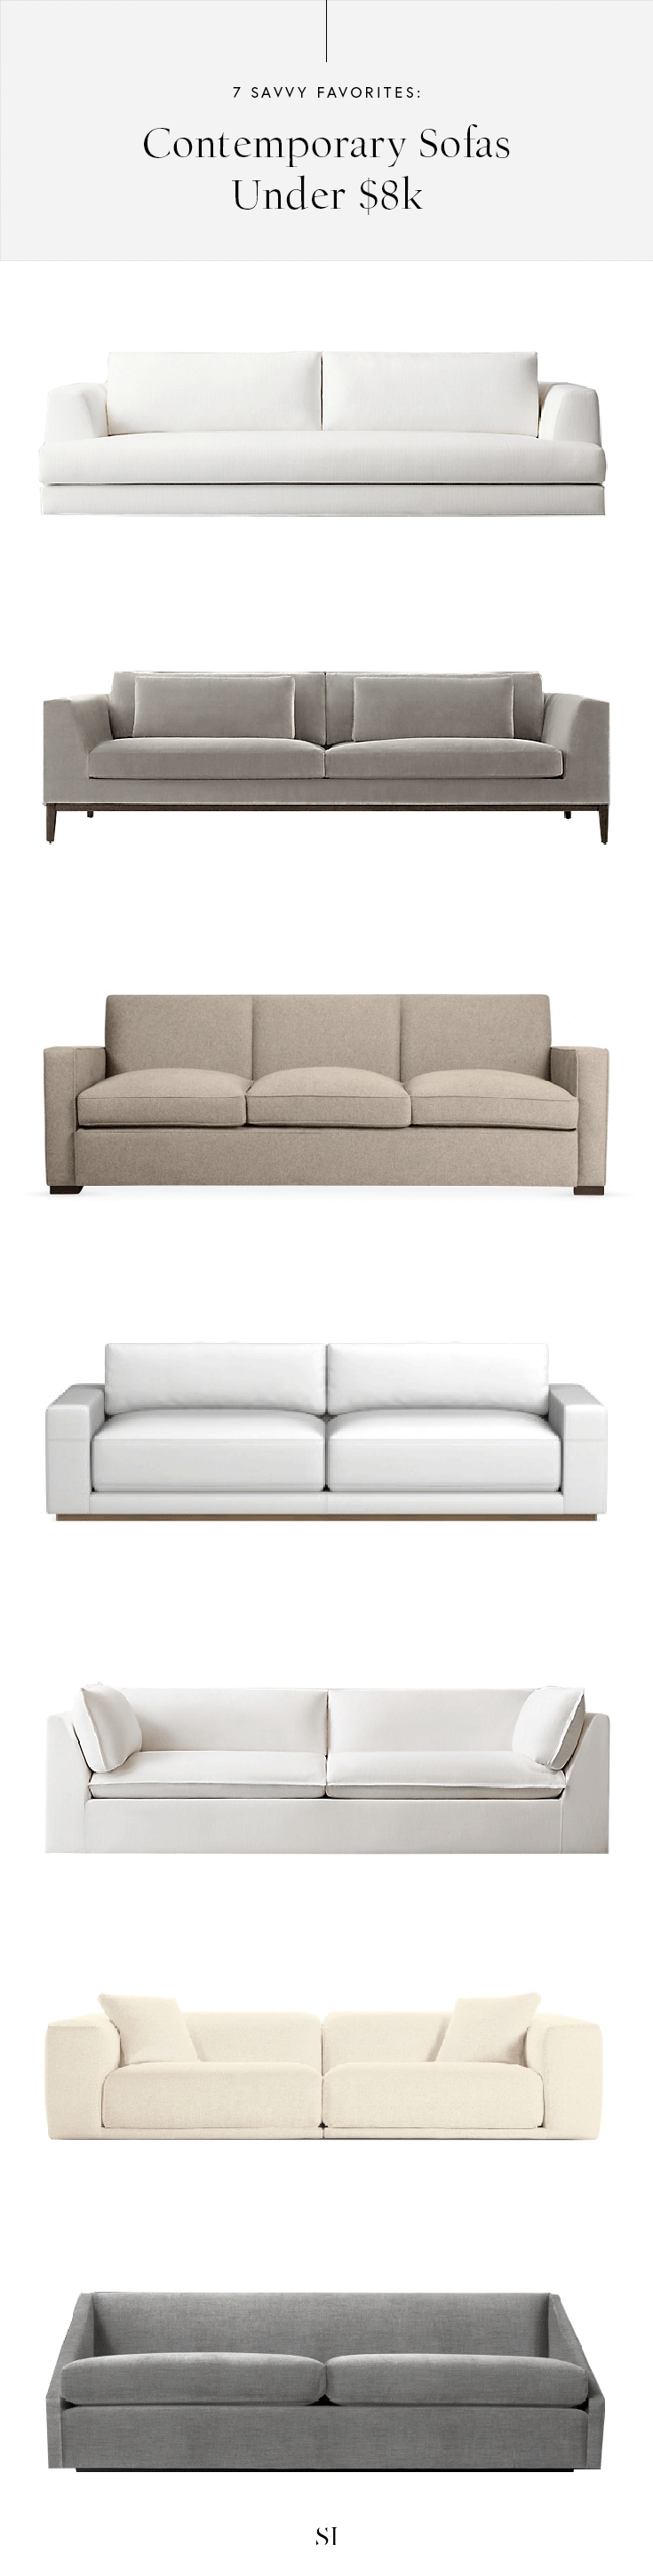 Best and top rated-modern-and-contemporary-sofas-and-couches-under-$10000-by-the-savvy-heart-interior-and-home-decor-studio-and-blog.png